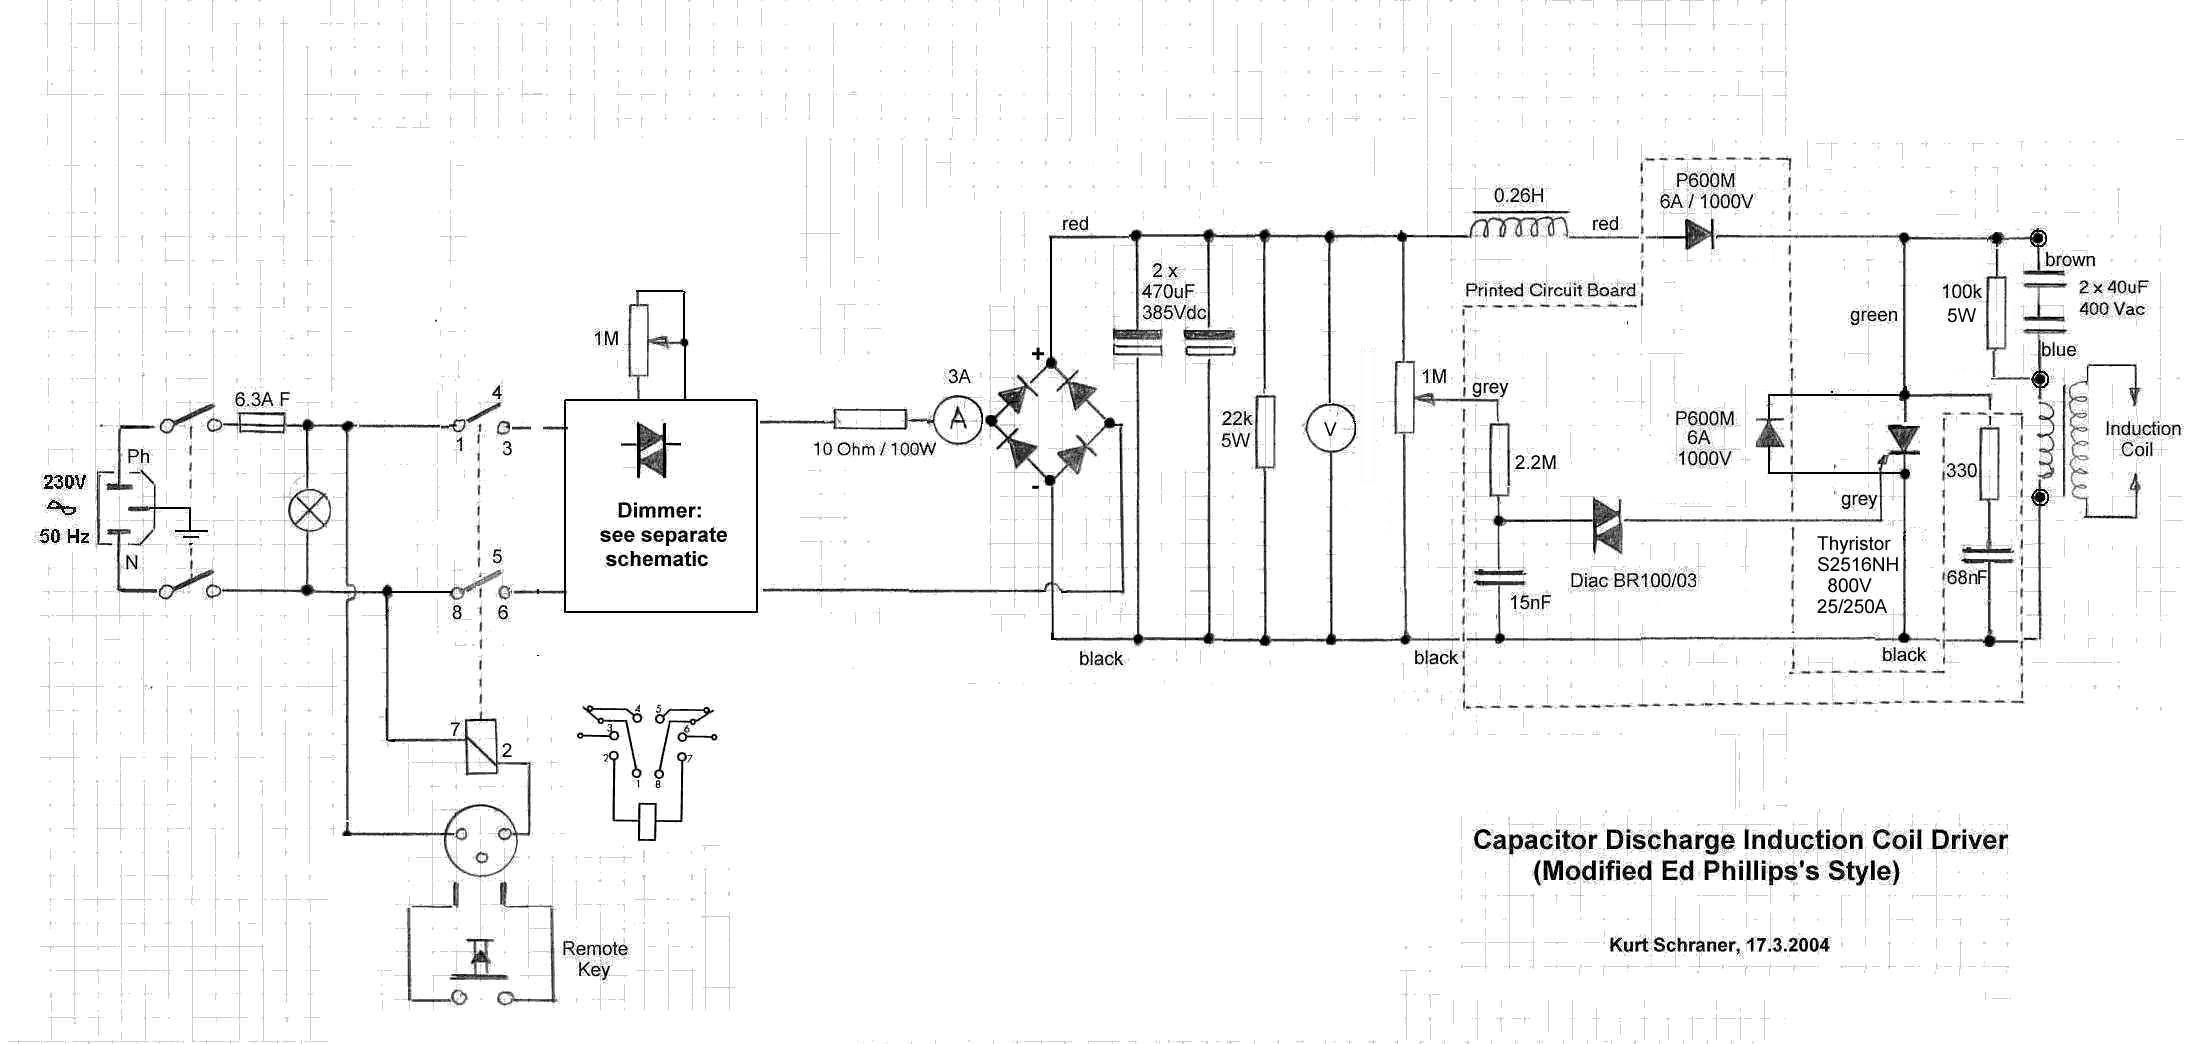 home datacomm ch  k schraner  cap discharger edp8 jpg Induction Motor Diagram Electromagnetic Induction Diagram